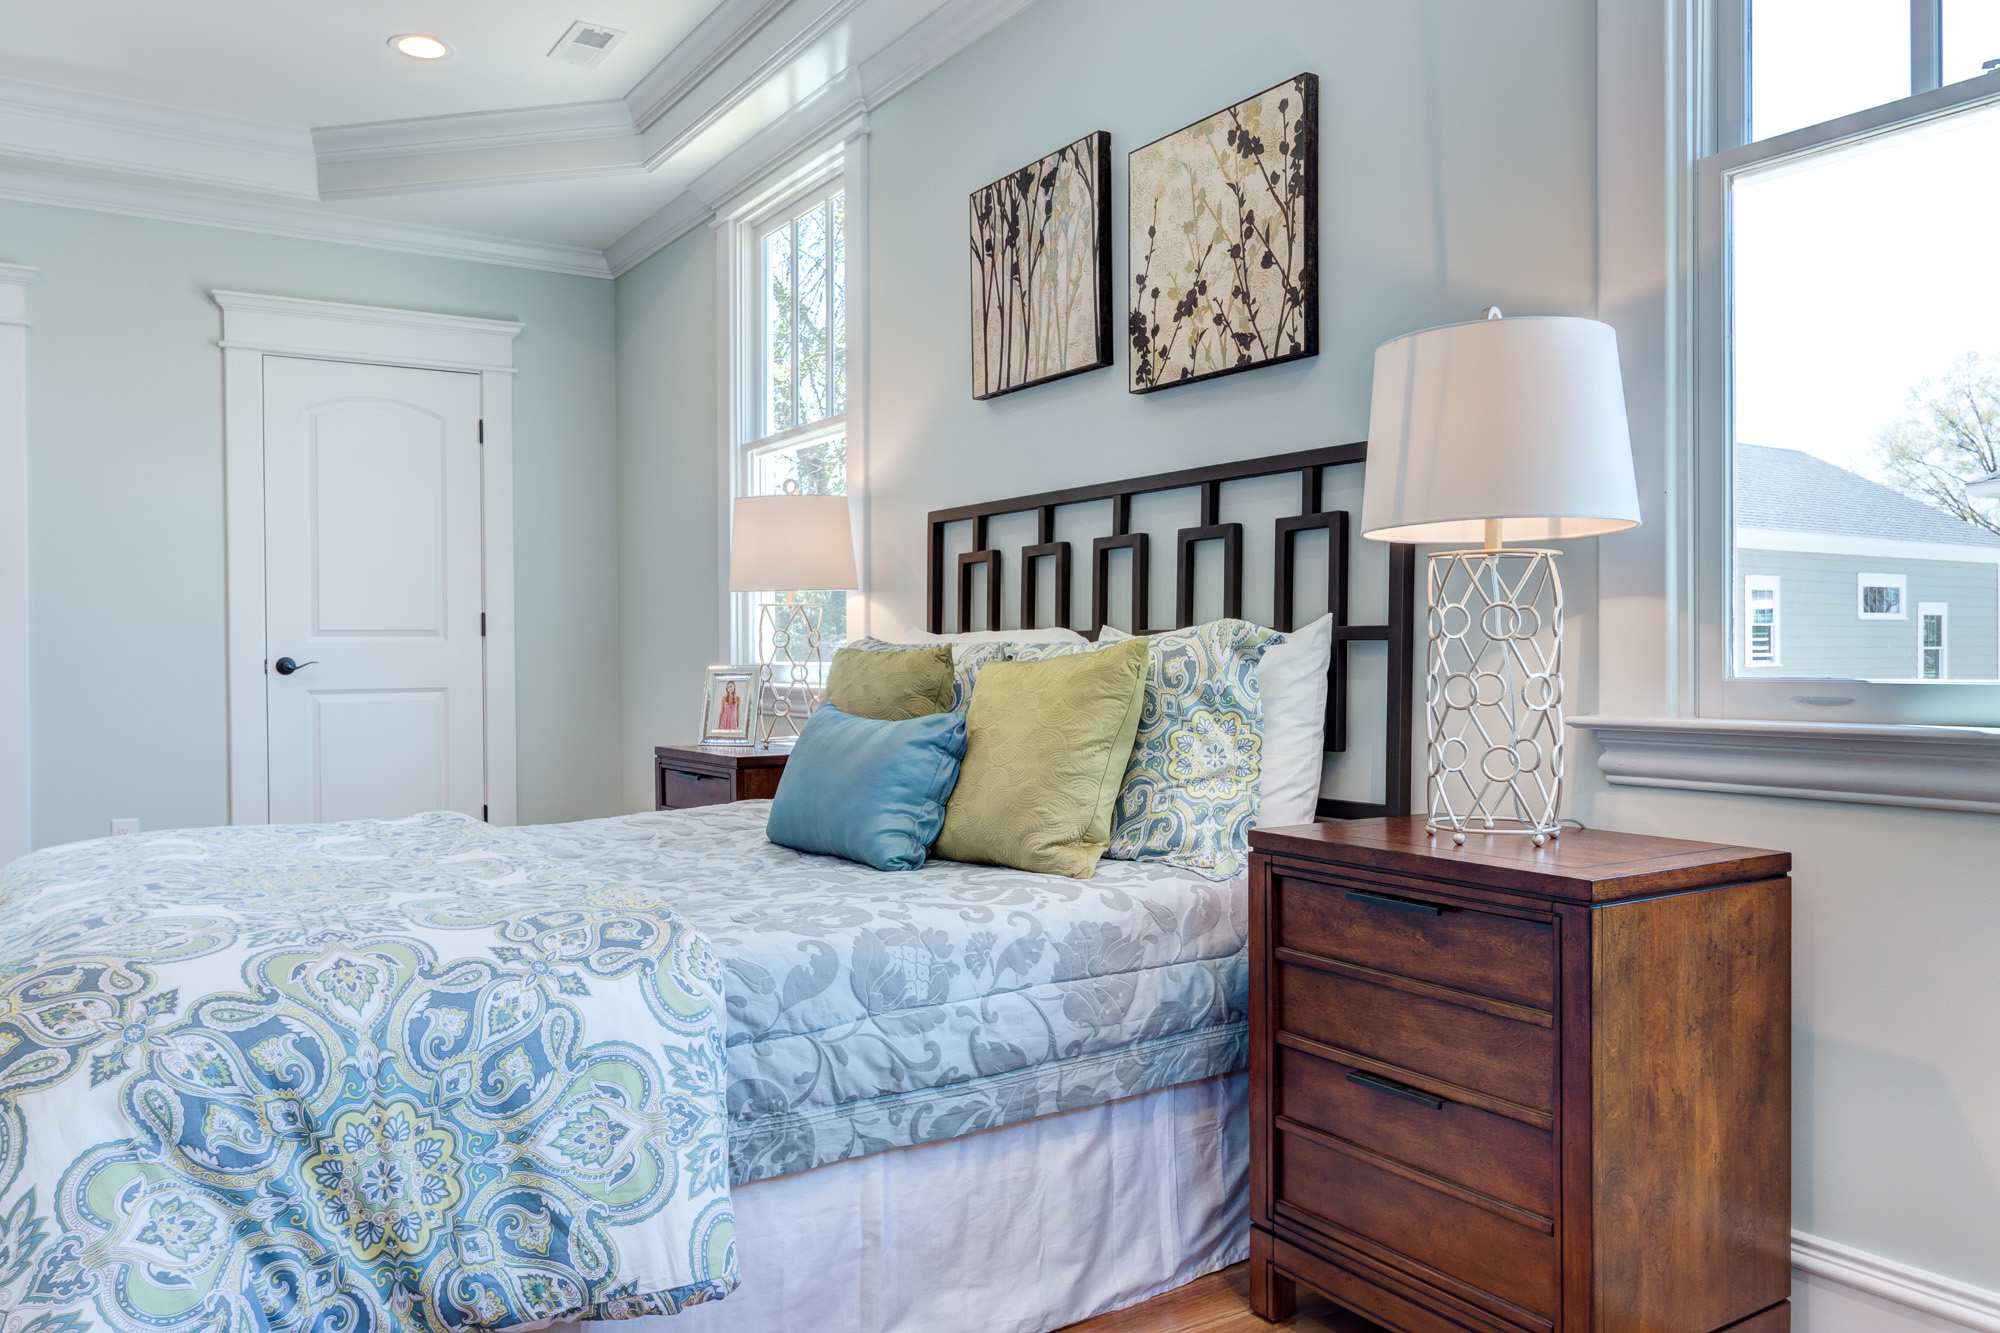 Real Estate Photography: Stunning new construction master bedroom in Durham, NC